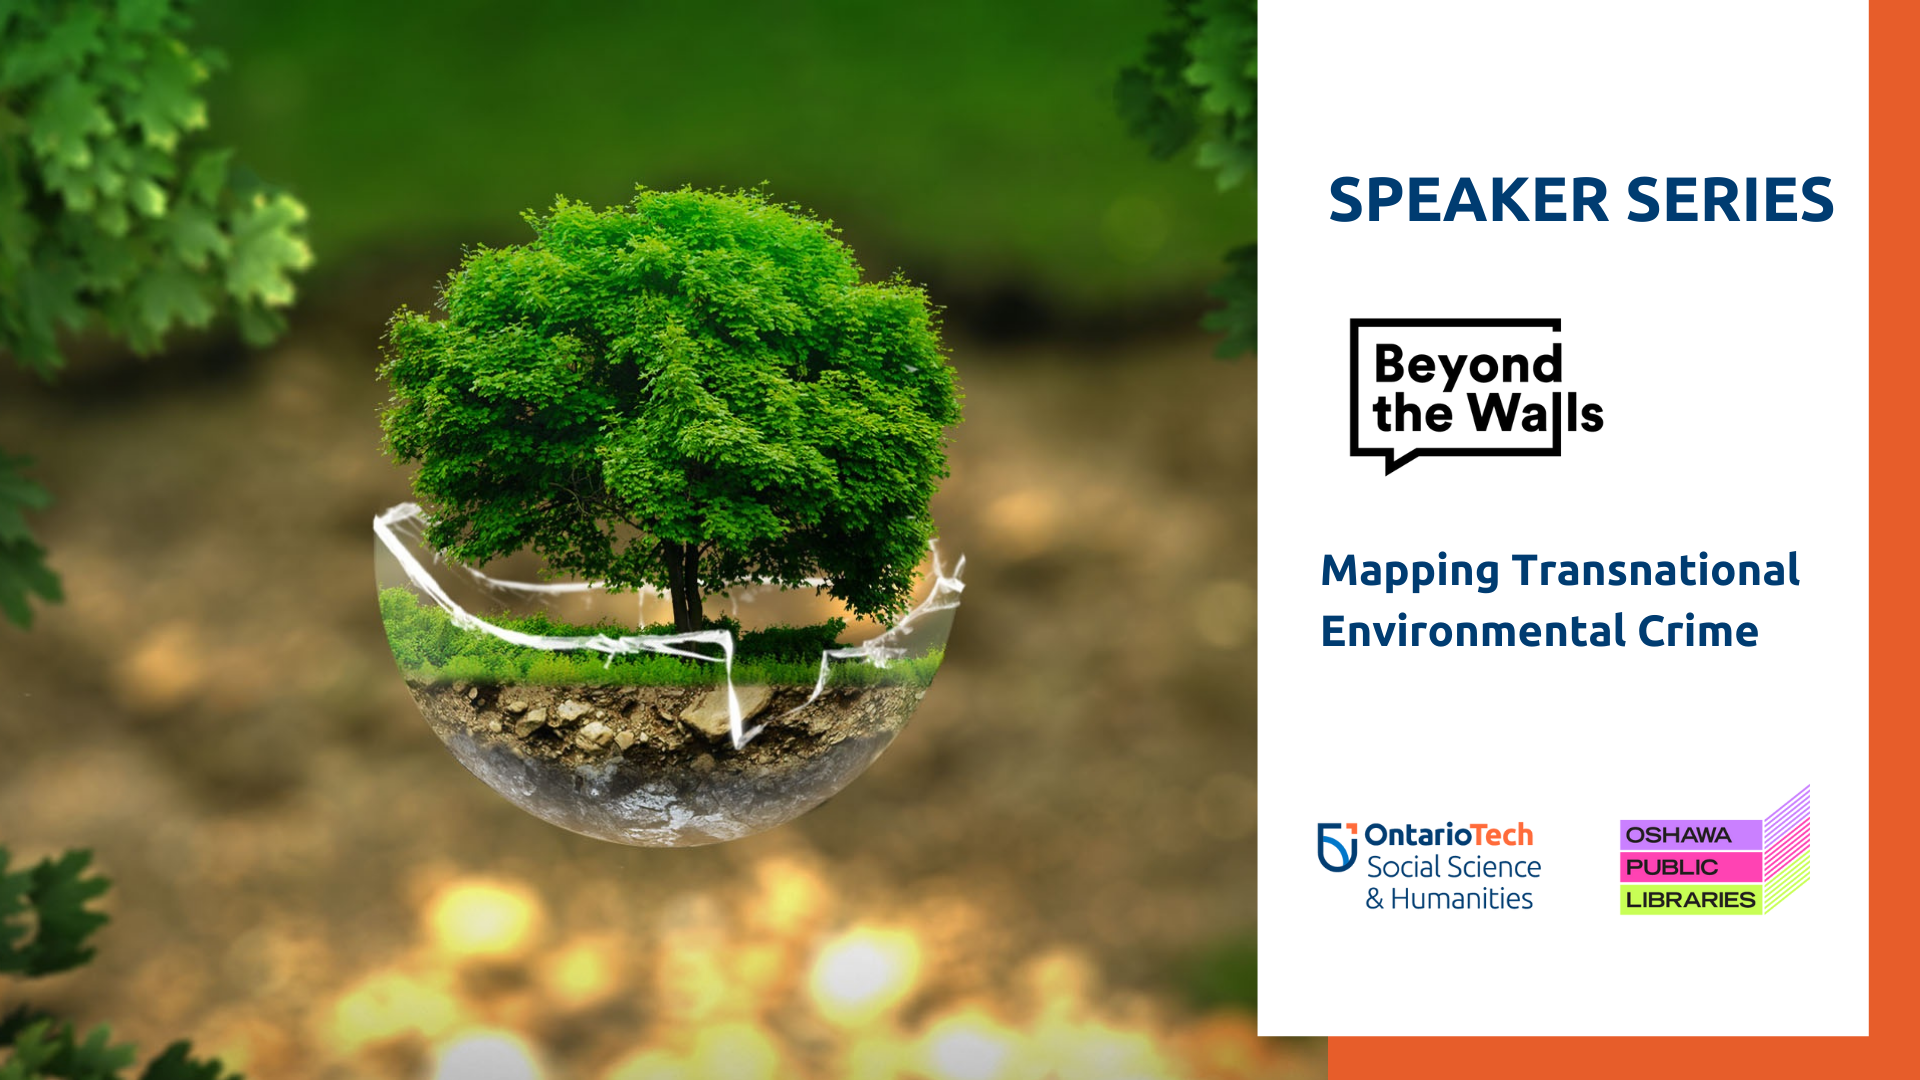 """Picture of Eventbrite image for the Beyond the Walls talk, """"Mapping Transnational Environmental Crime""""."""